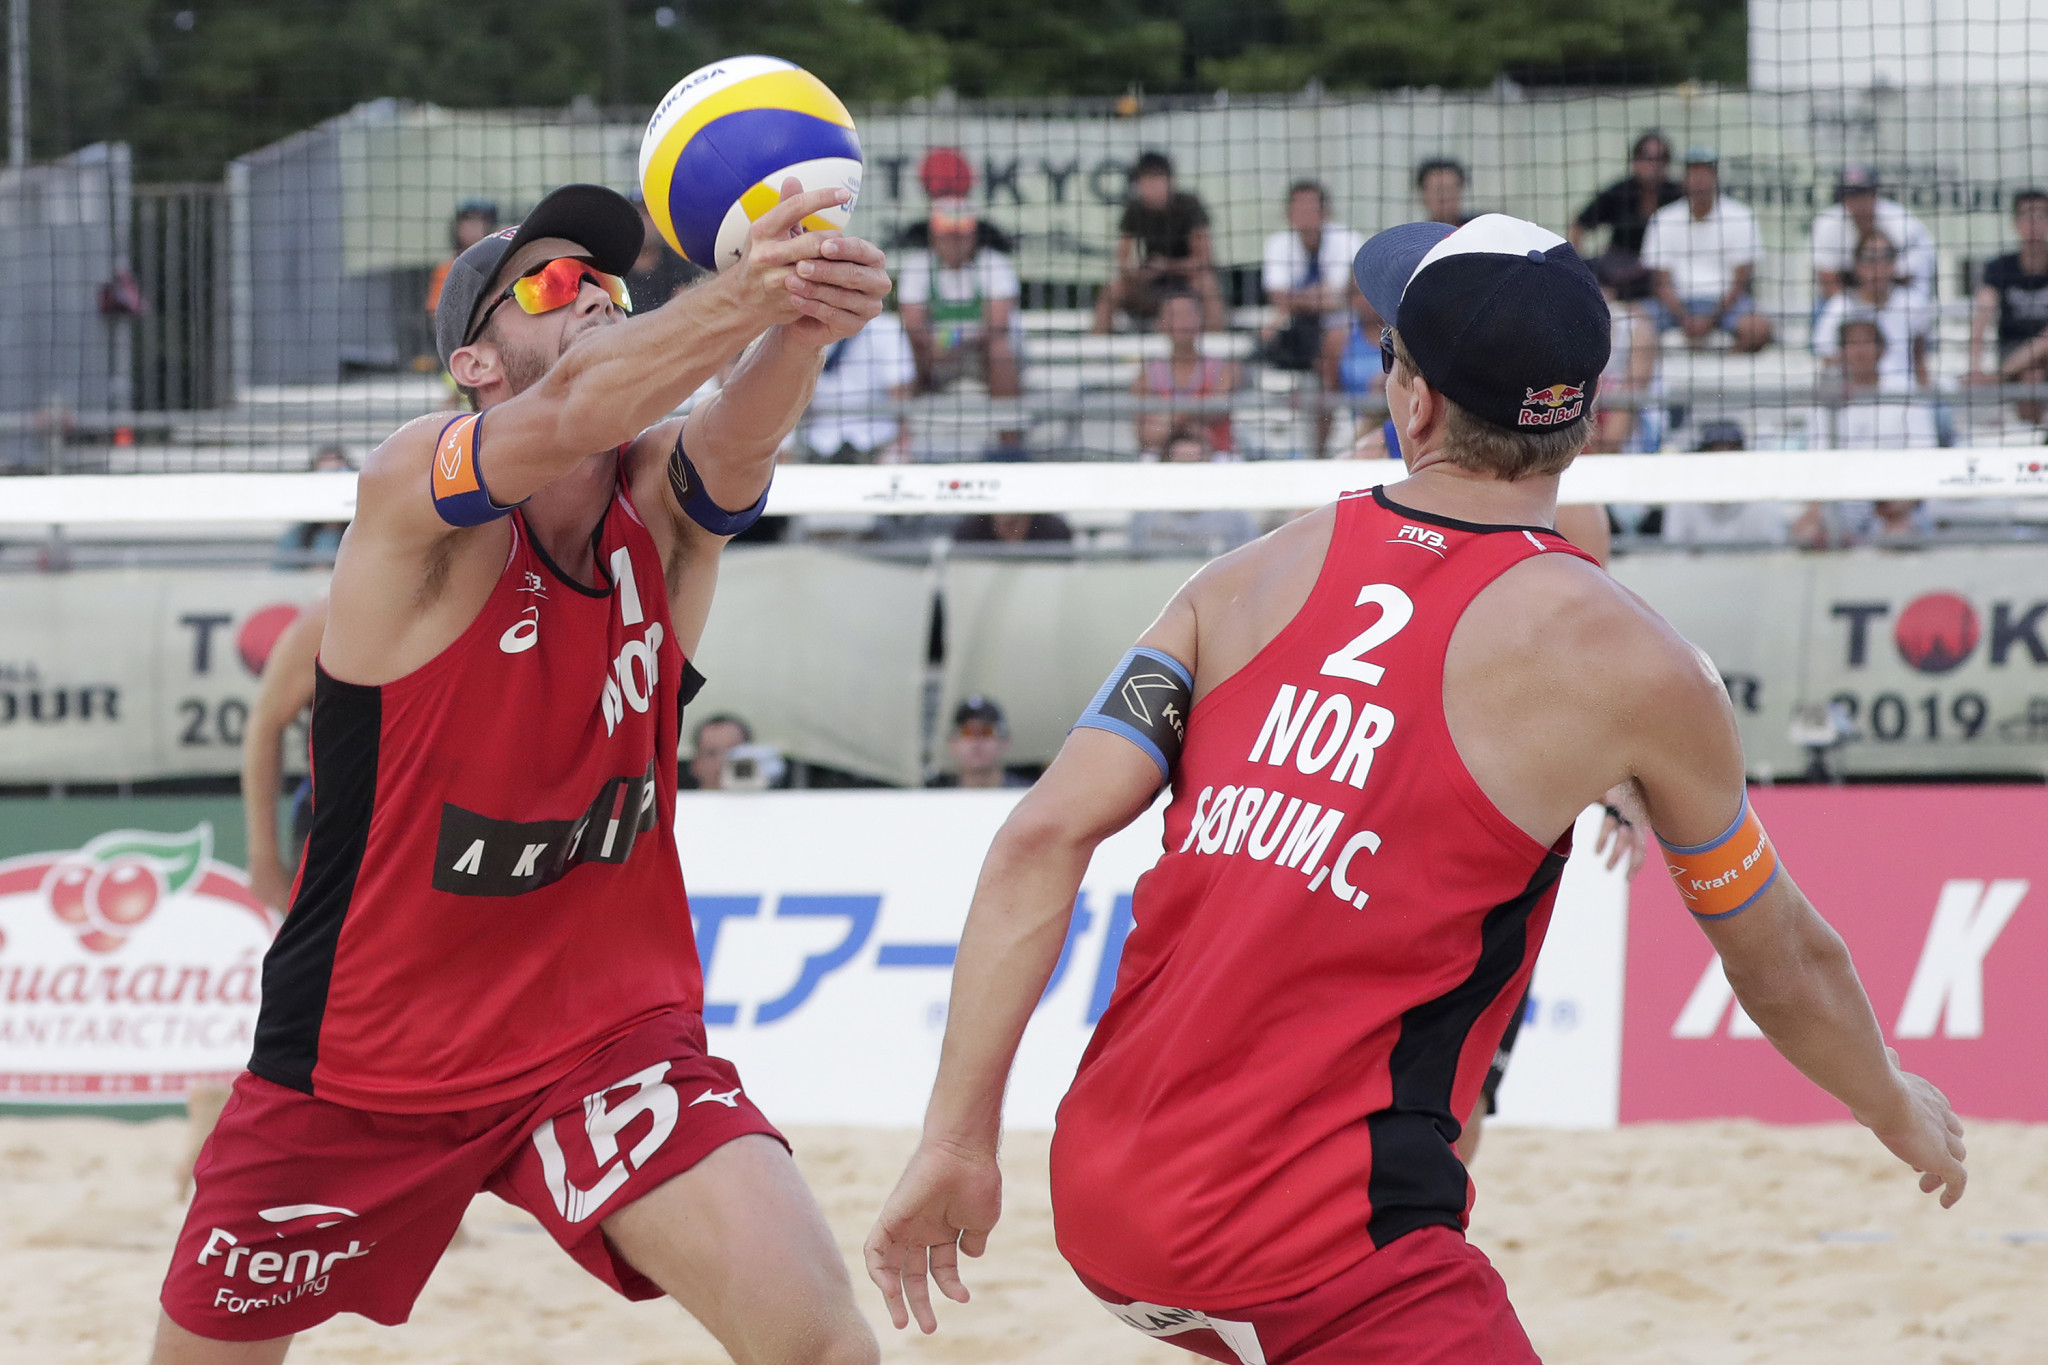 Mol and Sørum get European Beach Volleyball Championships title defence underway with victory